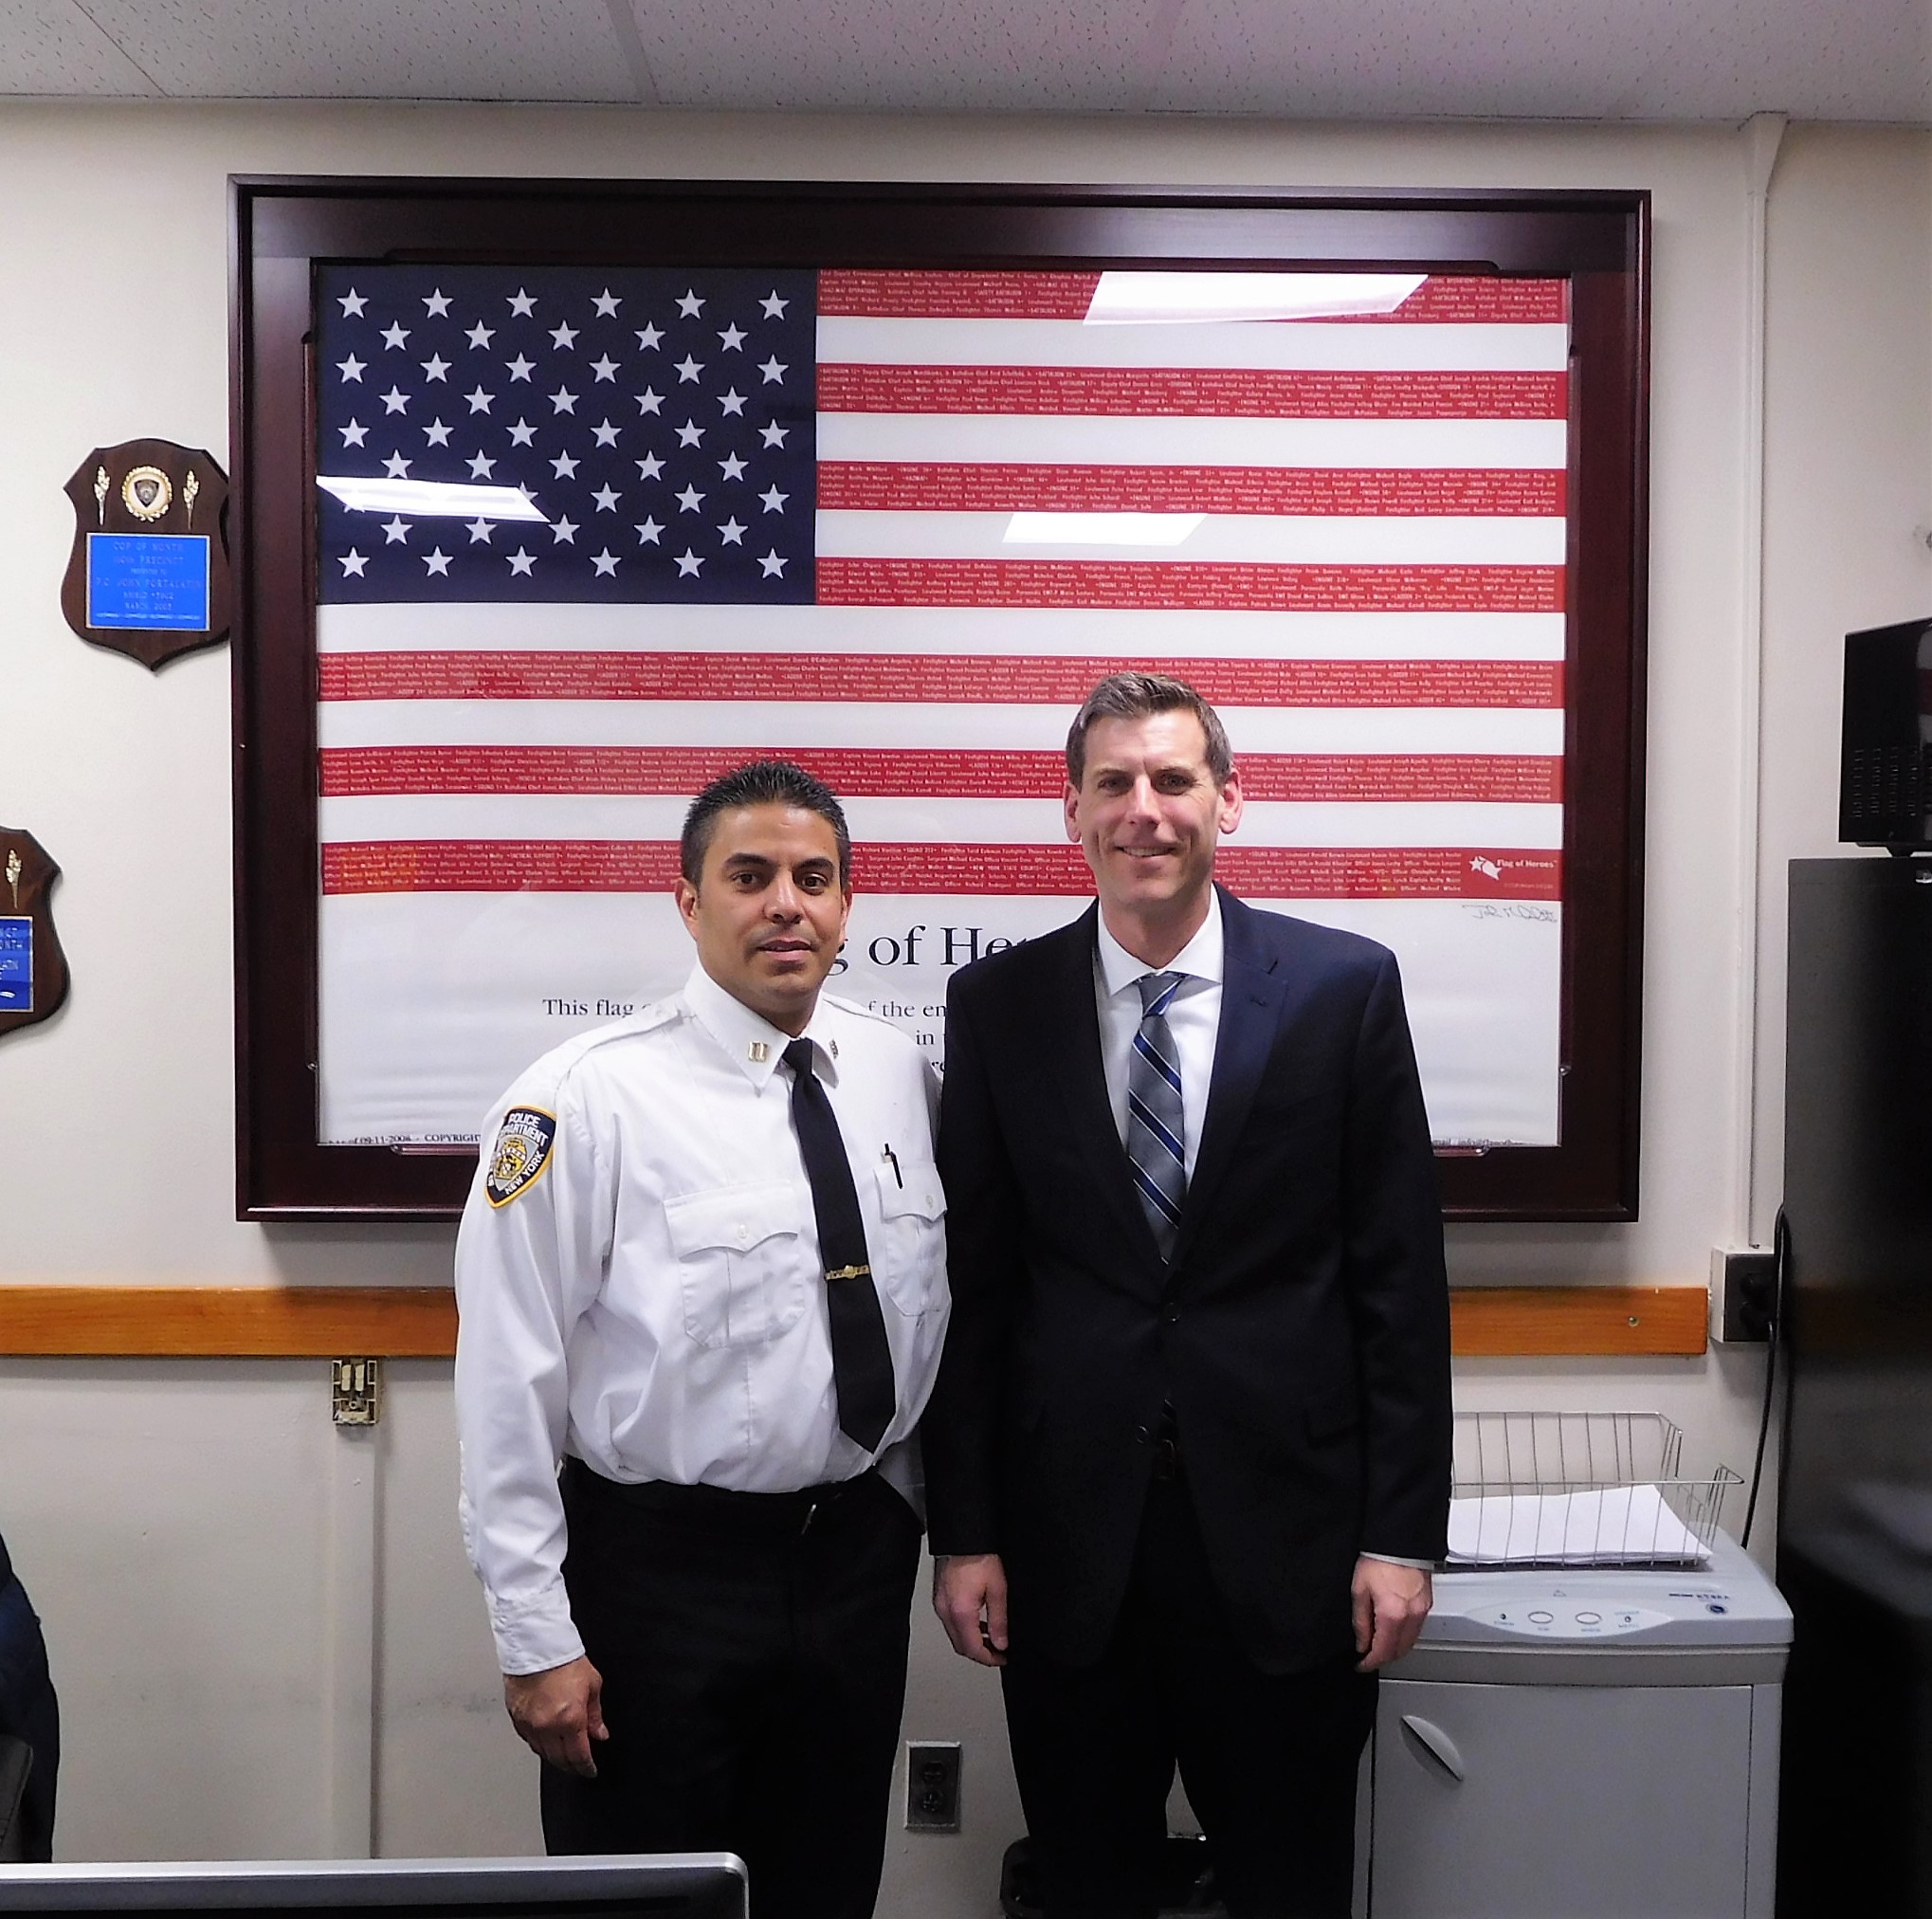 On February 28, 2020, Assemblyman Braunstein met with Captain John Portalatin, the new Commanding Officer of the 111th Precinct.